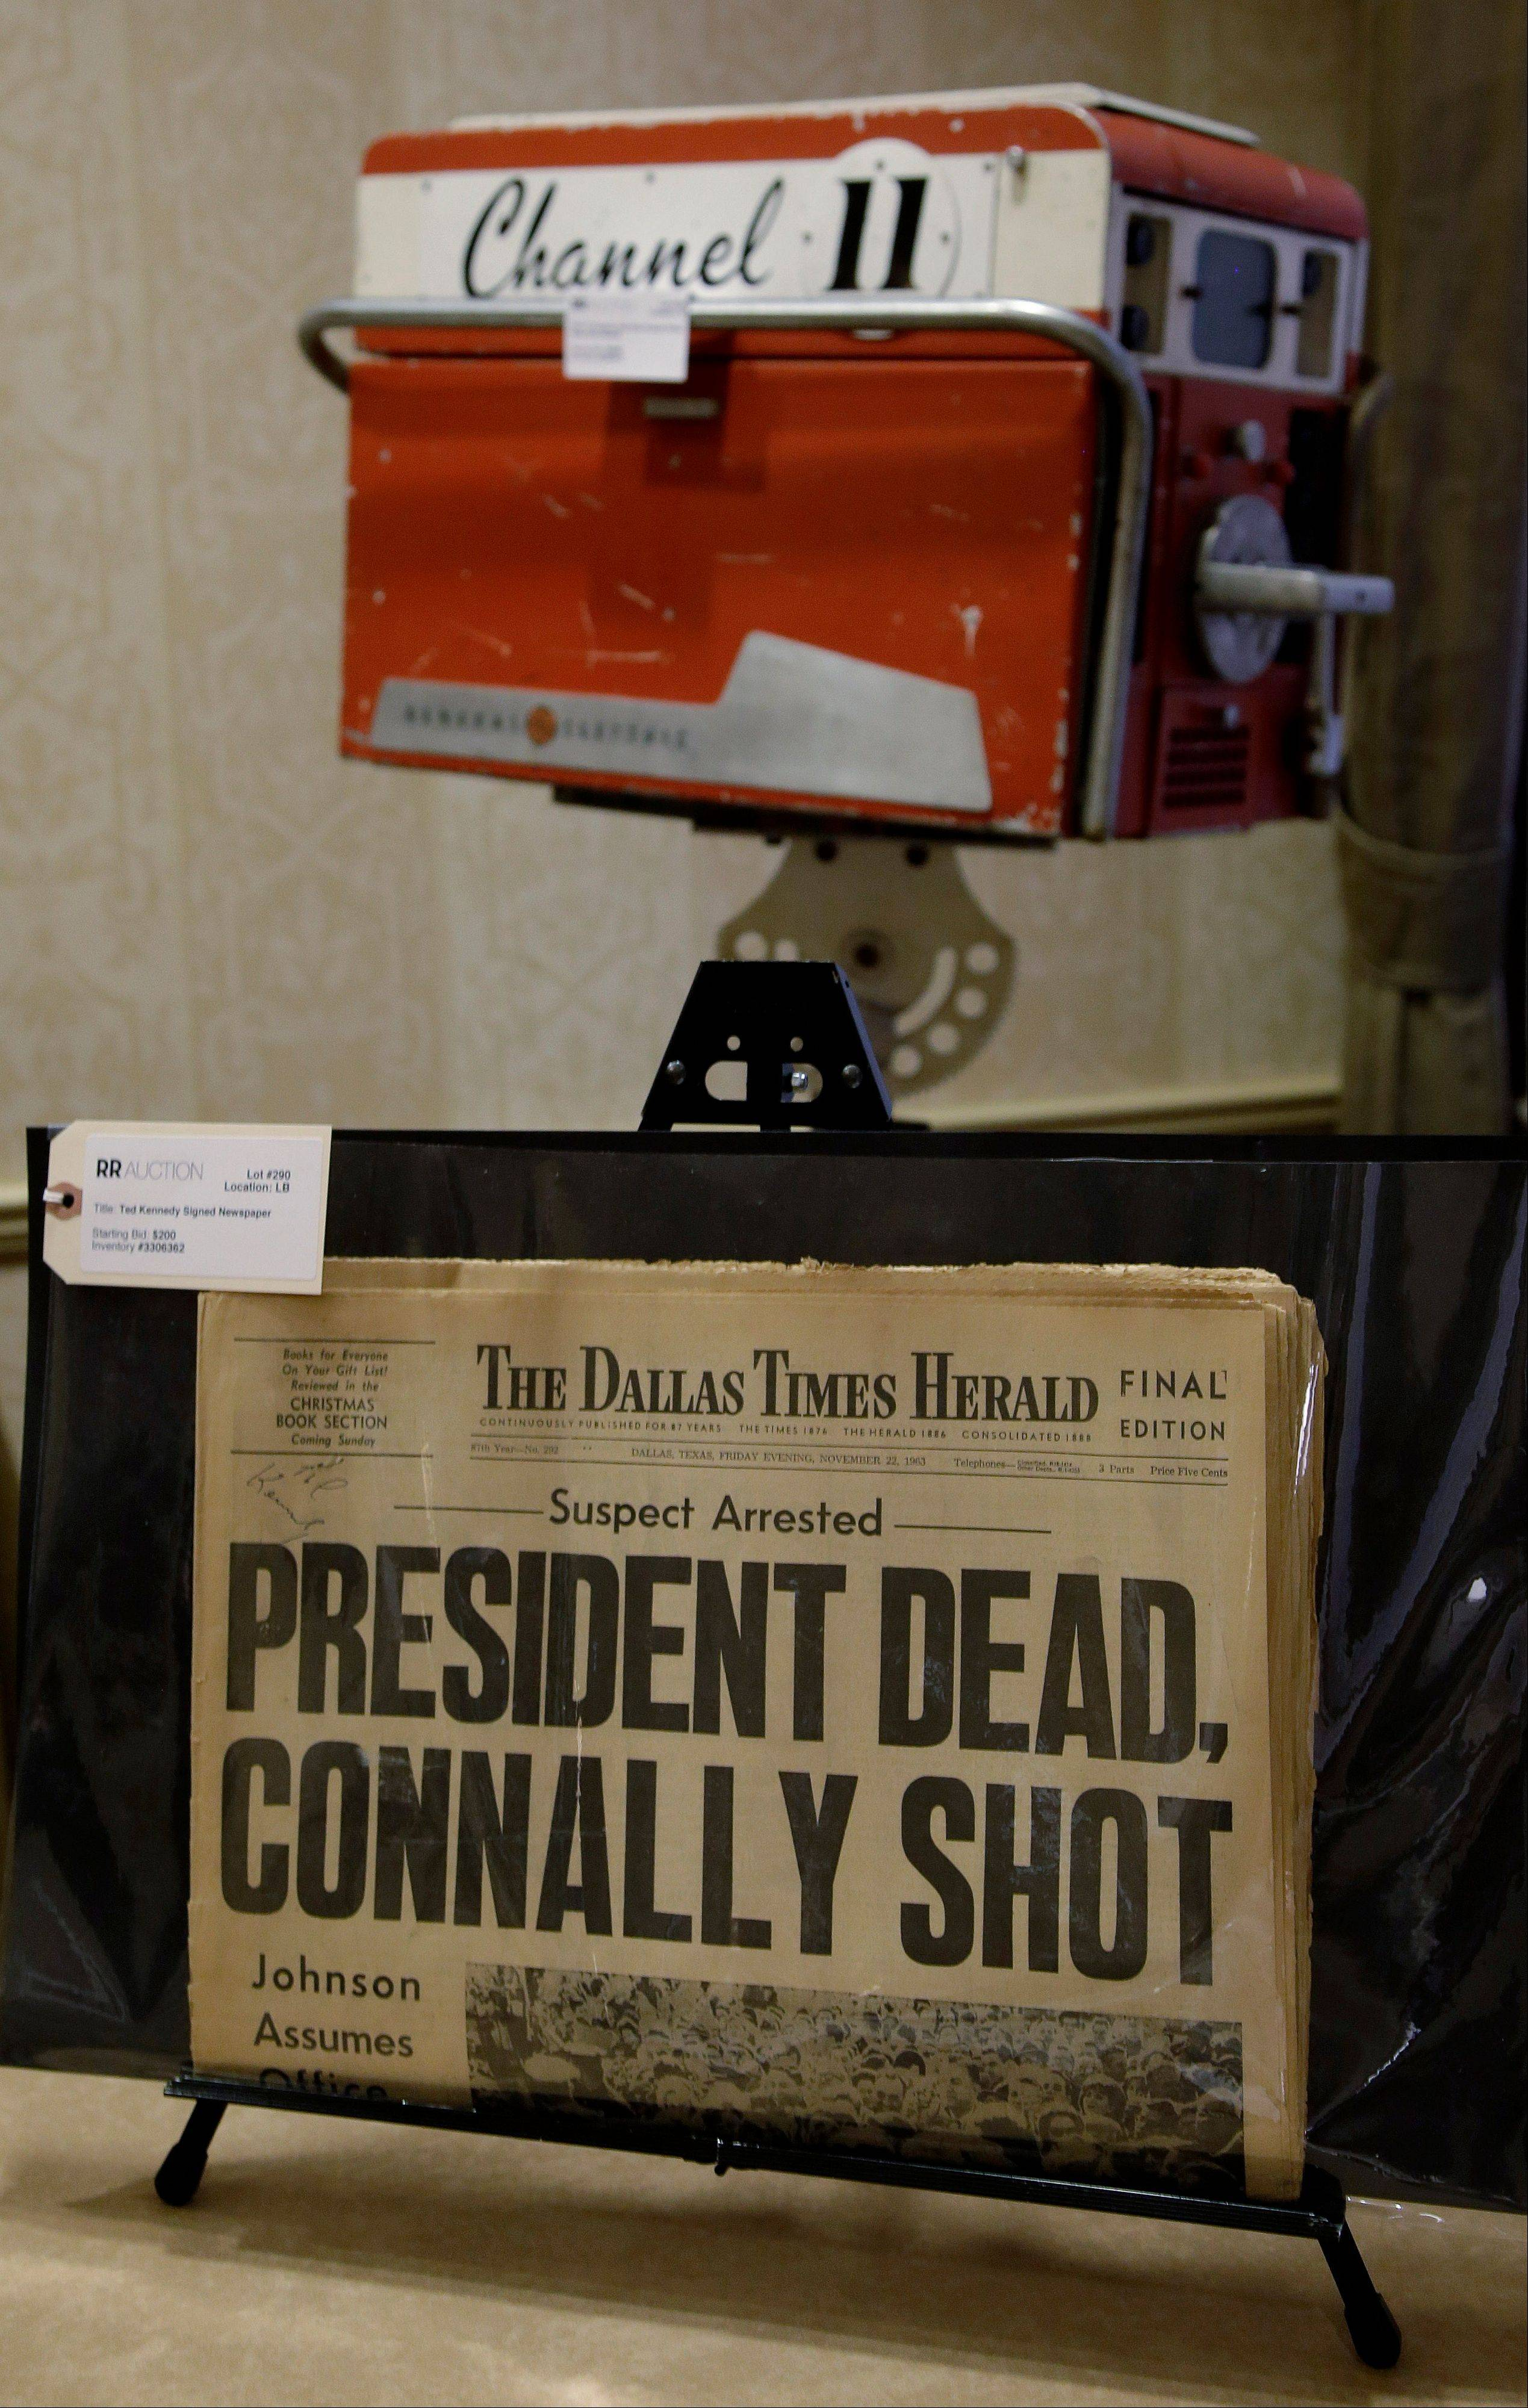 A copy of the final edition of The Dallas Times Herald from the afternoon of November 22, 1963 proclaims the assassination of President John Fitzgerald Kennedy.